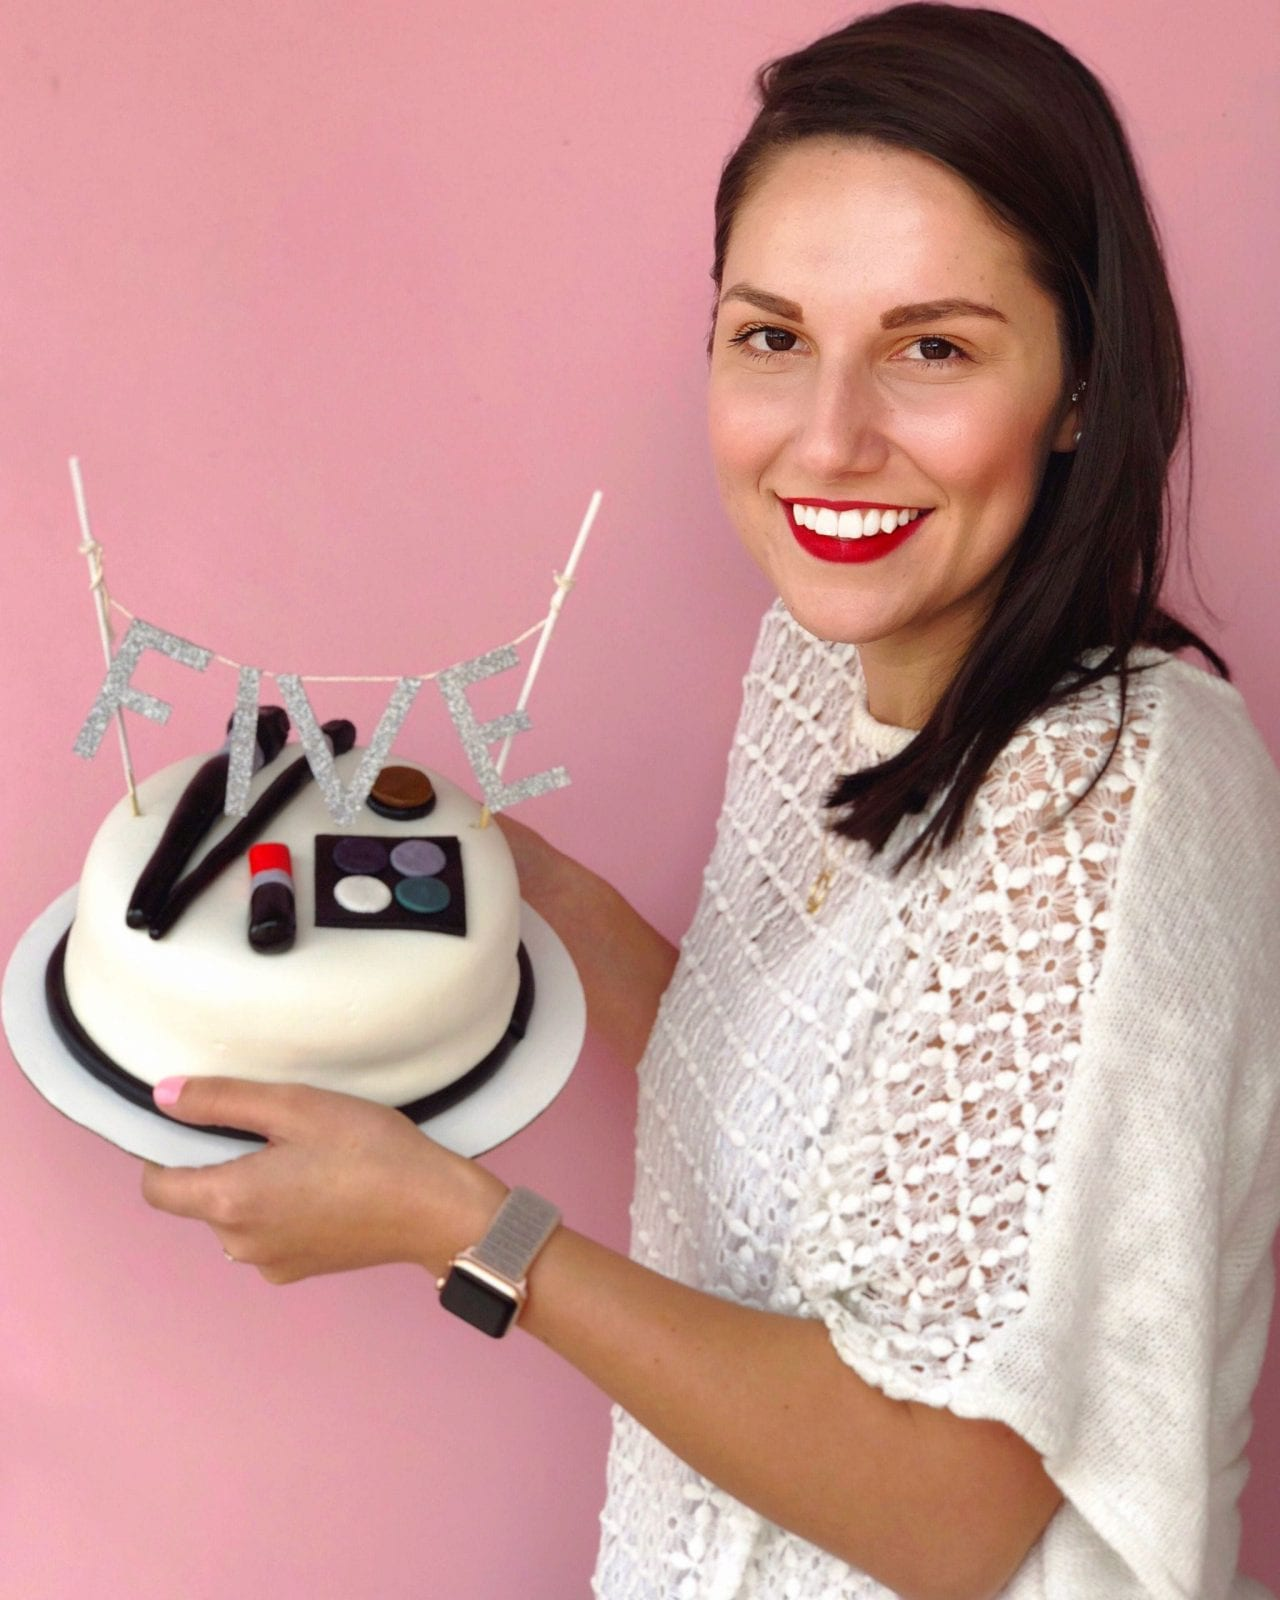 This is a close up of me holding a cake celebrating 5 years of blogging, and my hair in its state after washing my hair with Nexxus for several days.